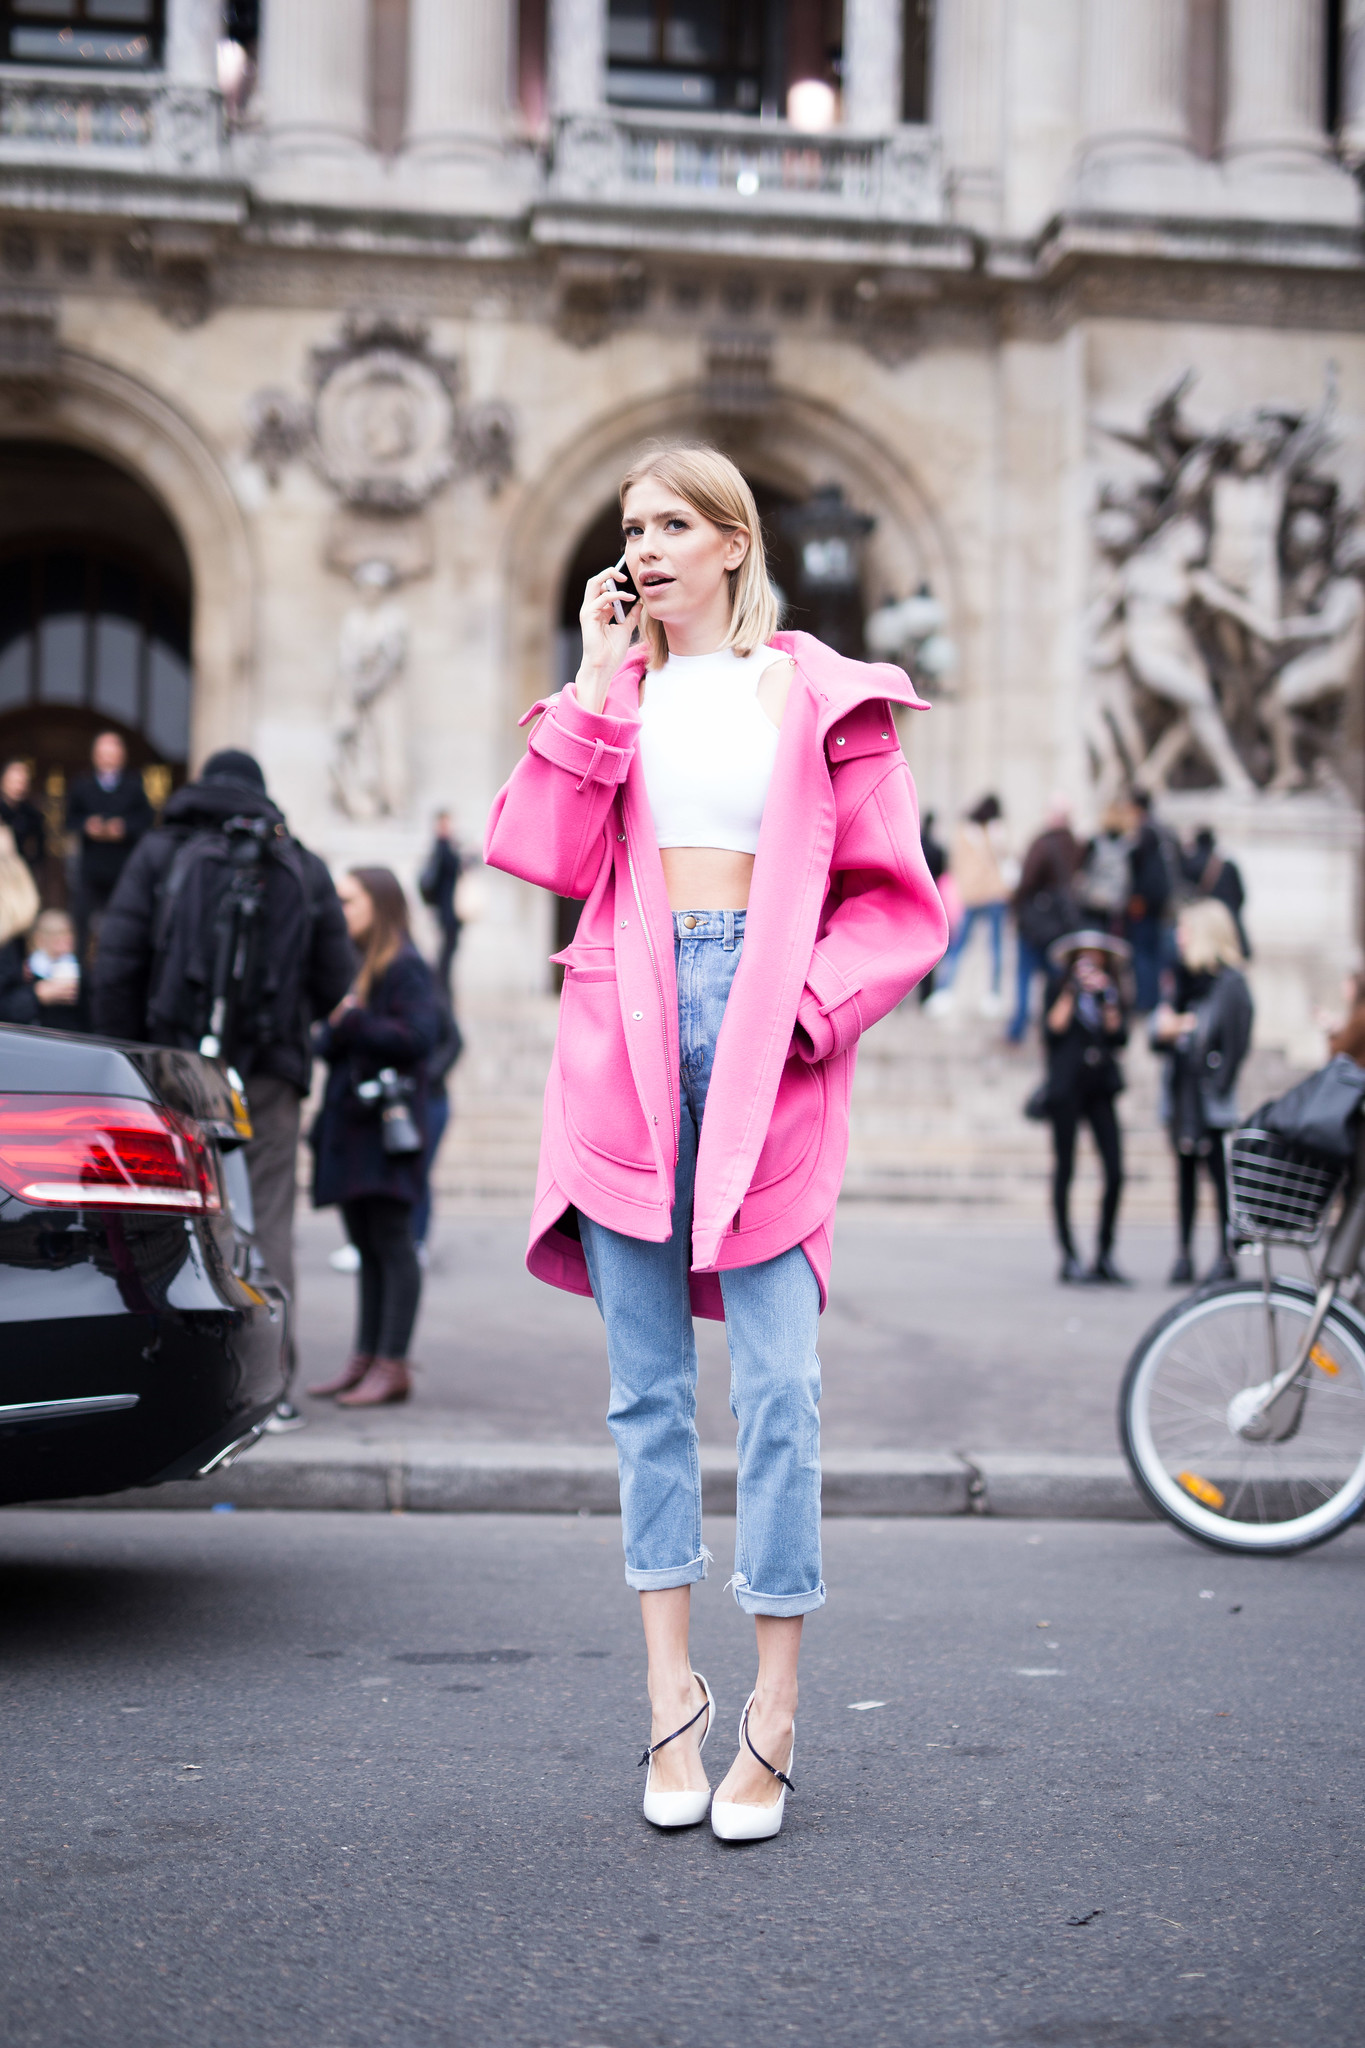 Street Style - Elena Perminova, Paris Fashion Week